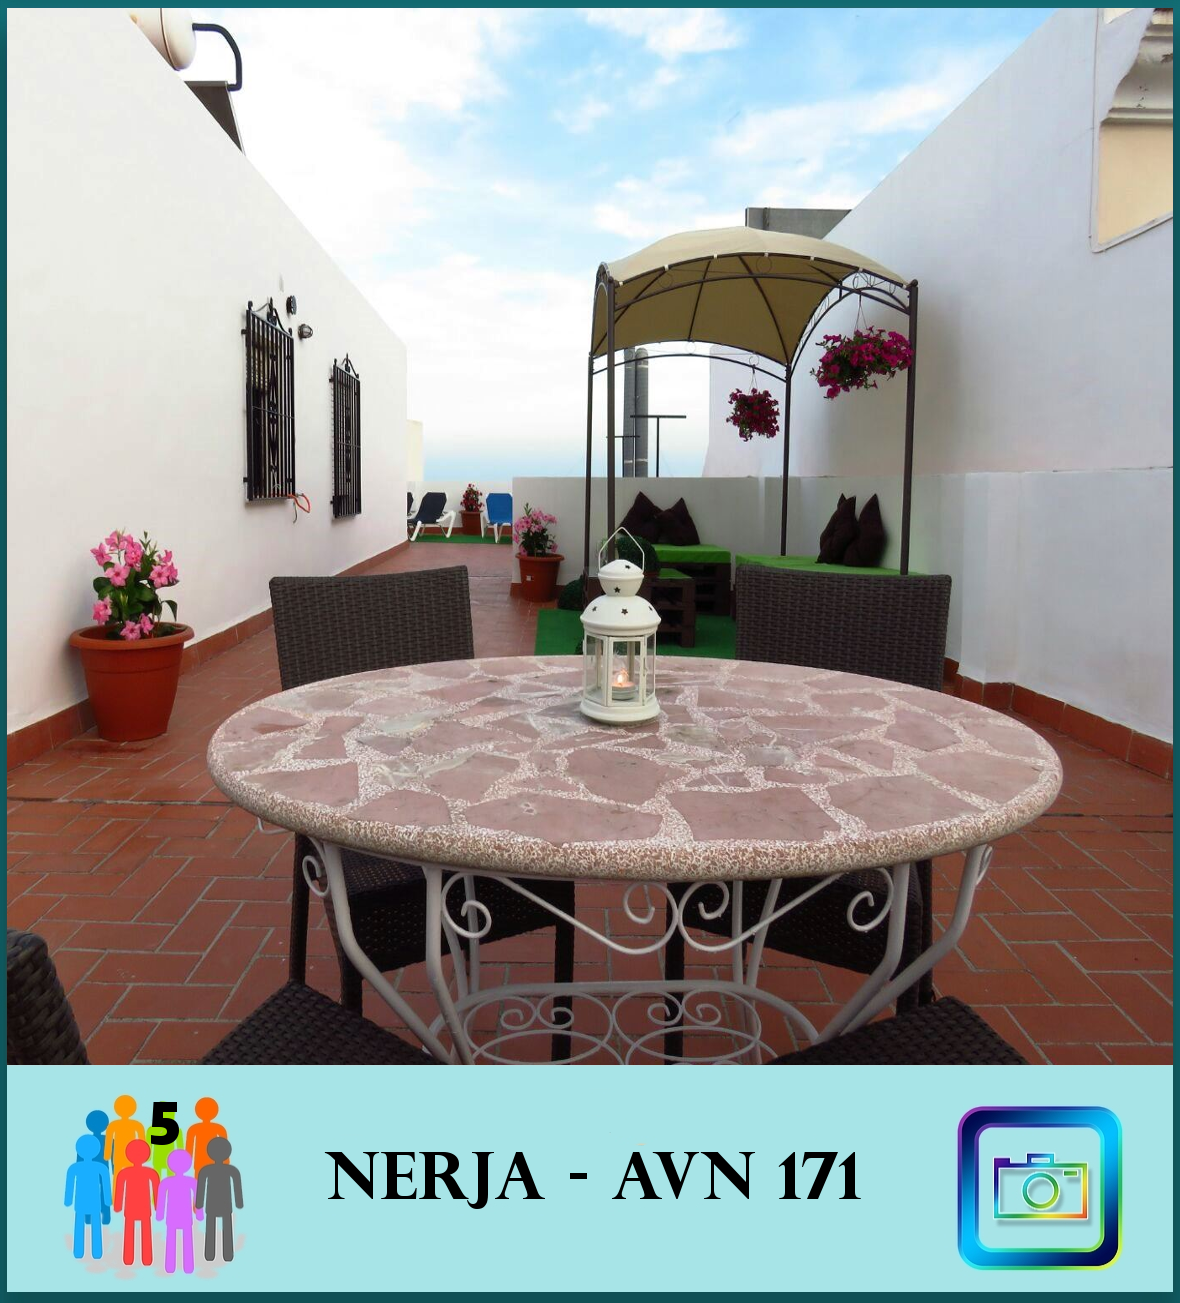 Andalusia Solutions in Nerja: address, telephone number and